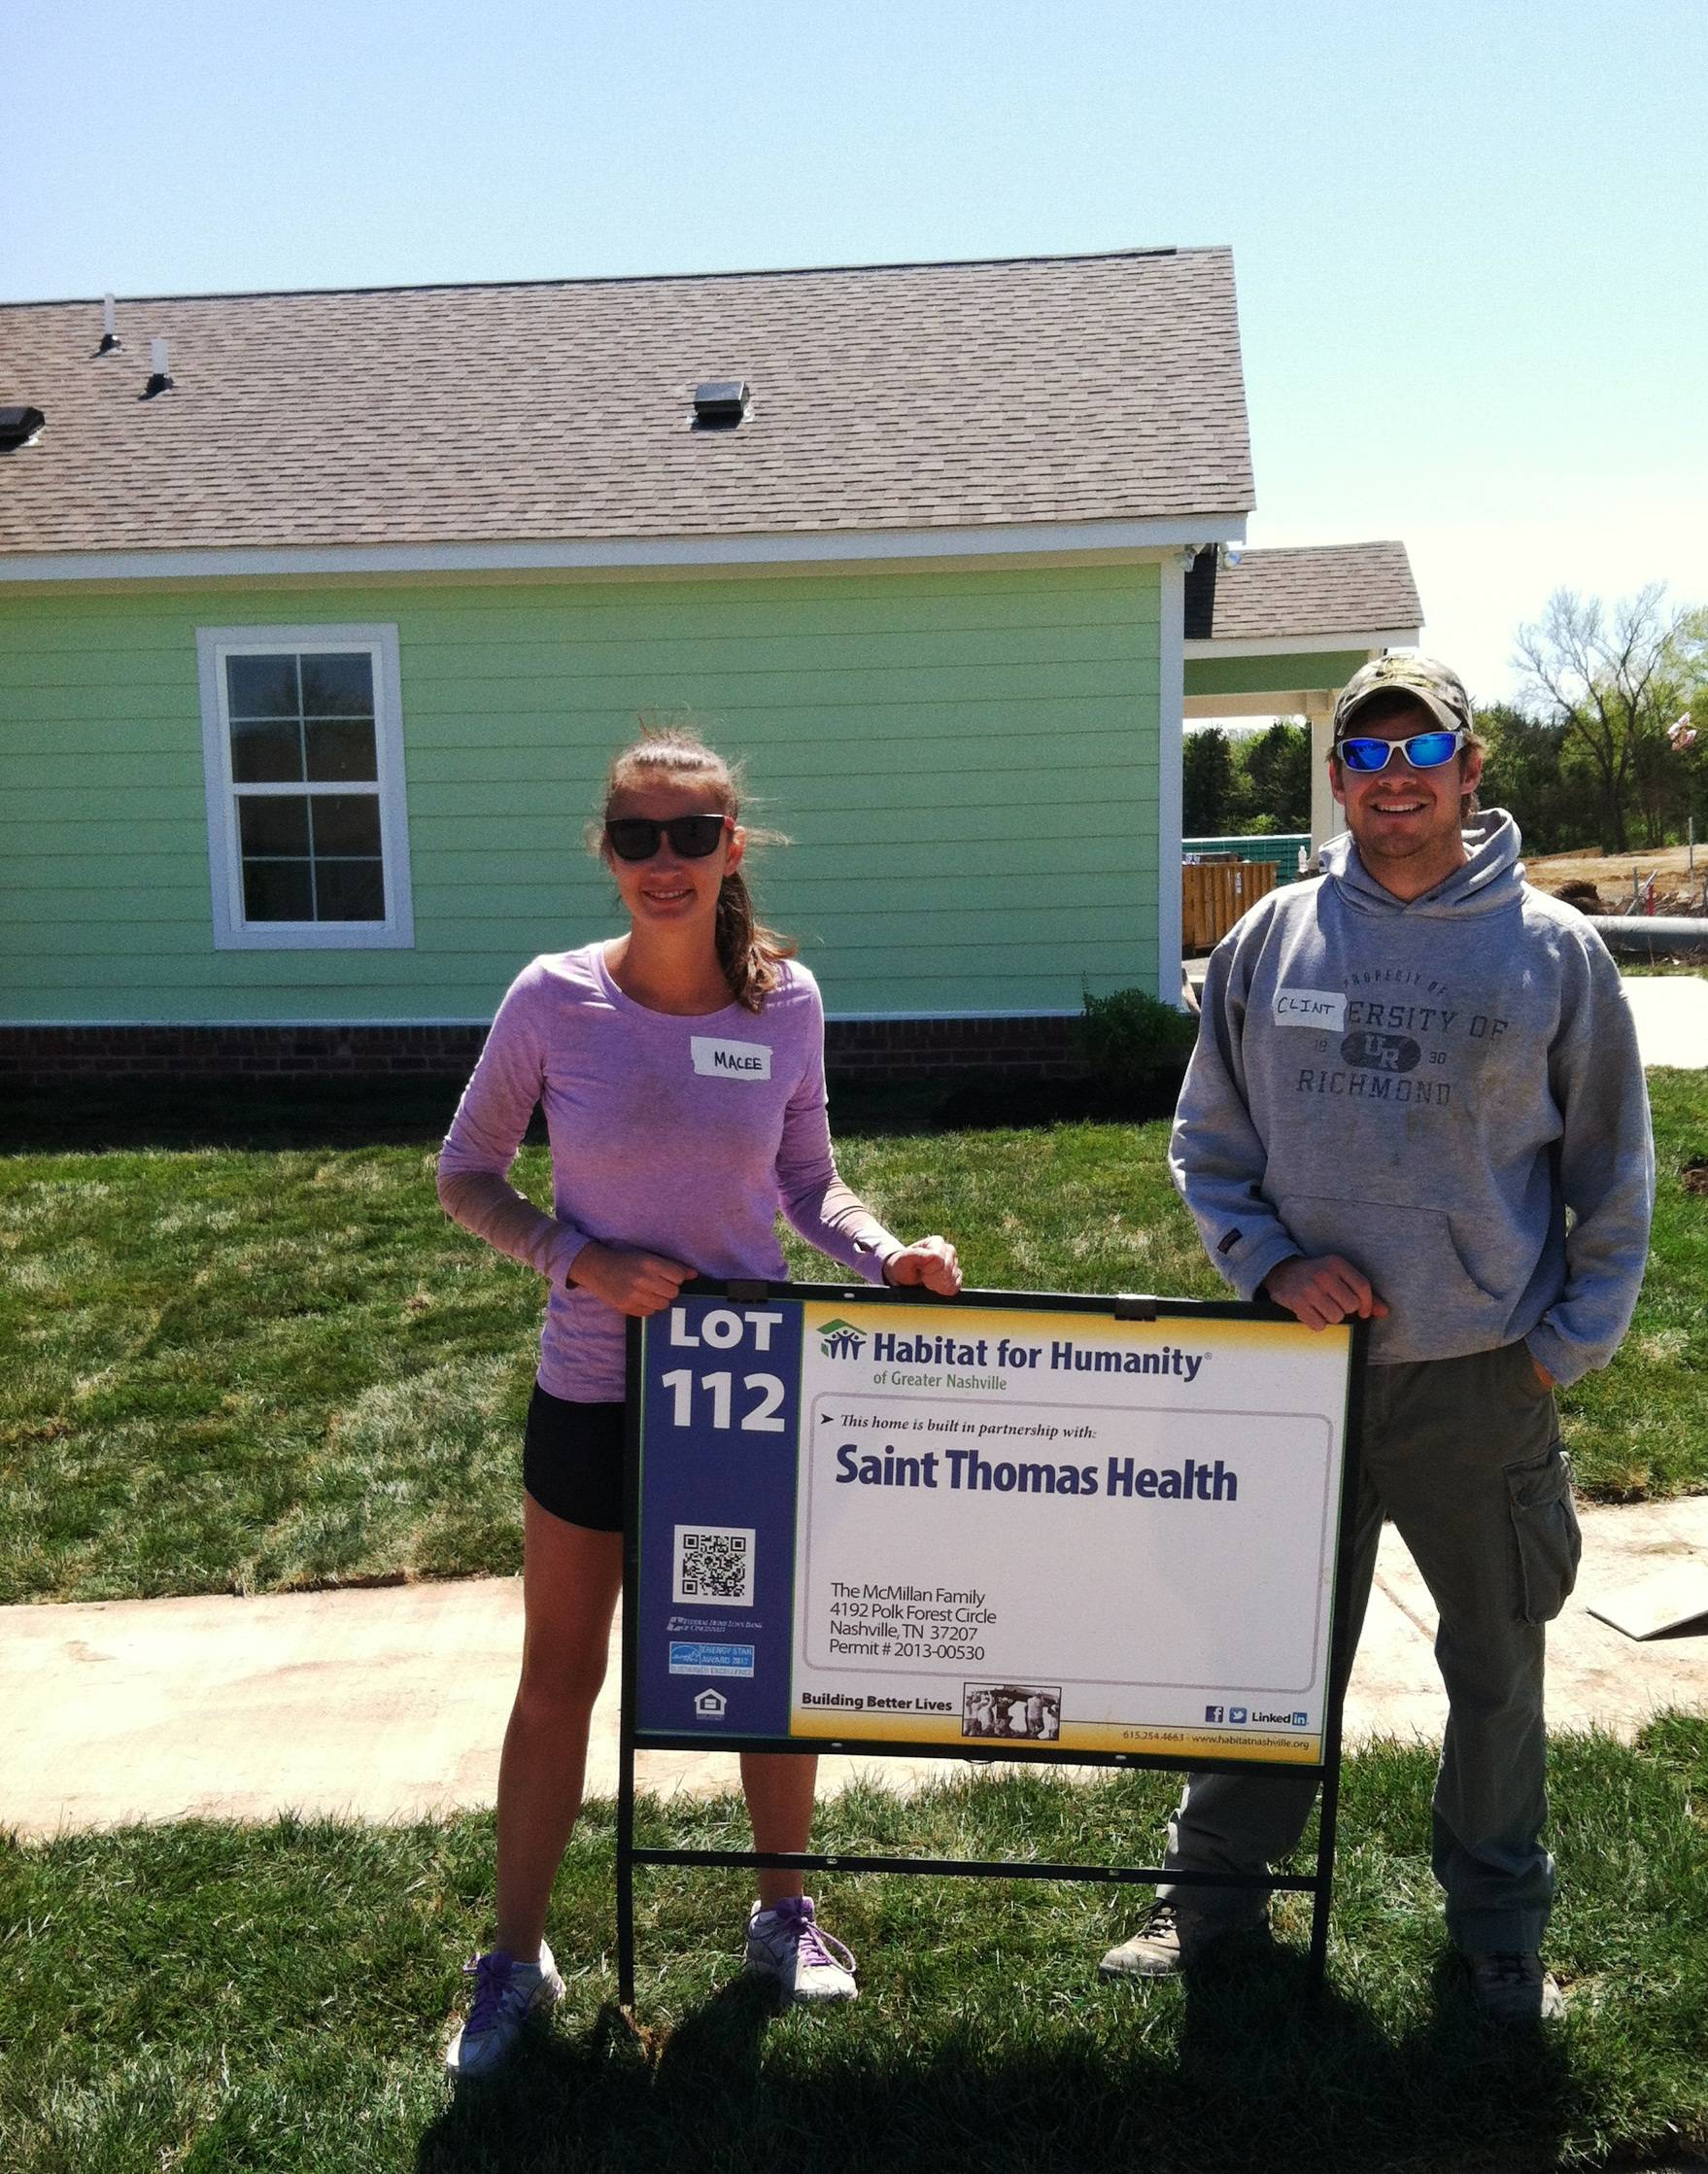 Accretive Health employees teamed up with St. Thomas Health and Baptist Volunteer Services in Nashville, Tenn., to build houses for Habitat for Humanity. Pictured at the worksite are Accretive Health employees Macee Bumpus (left) and Clint Anderson (right).